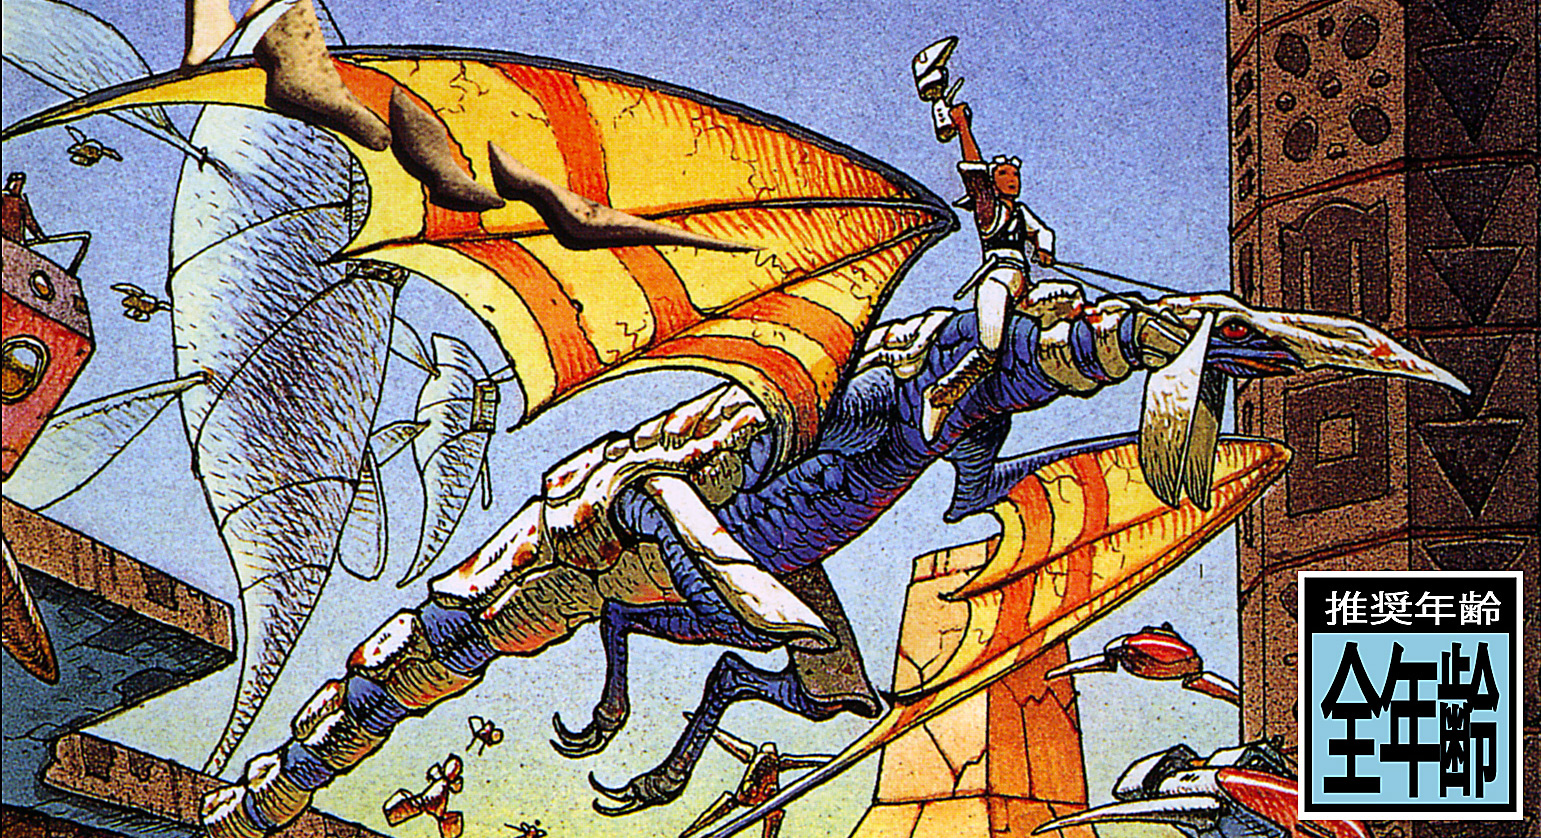 Panzer Dragoon I and II remakes are incoming screenshot